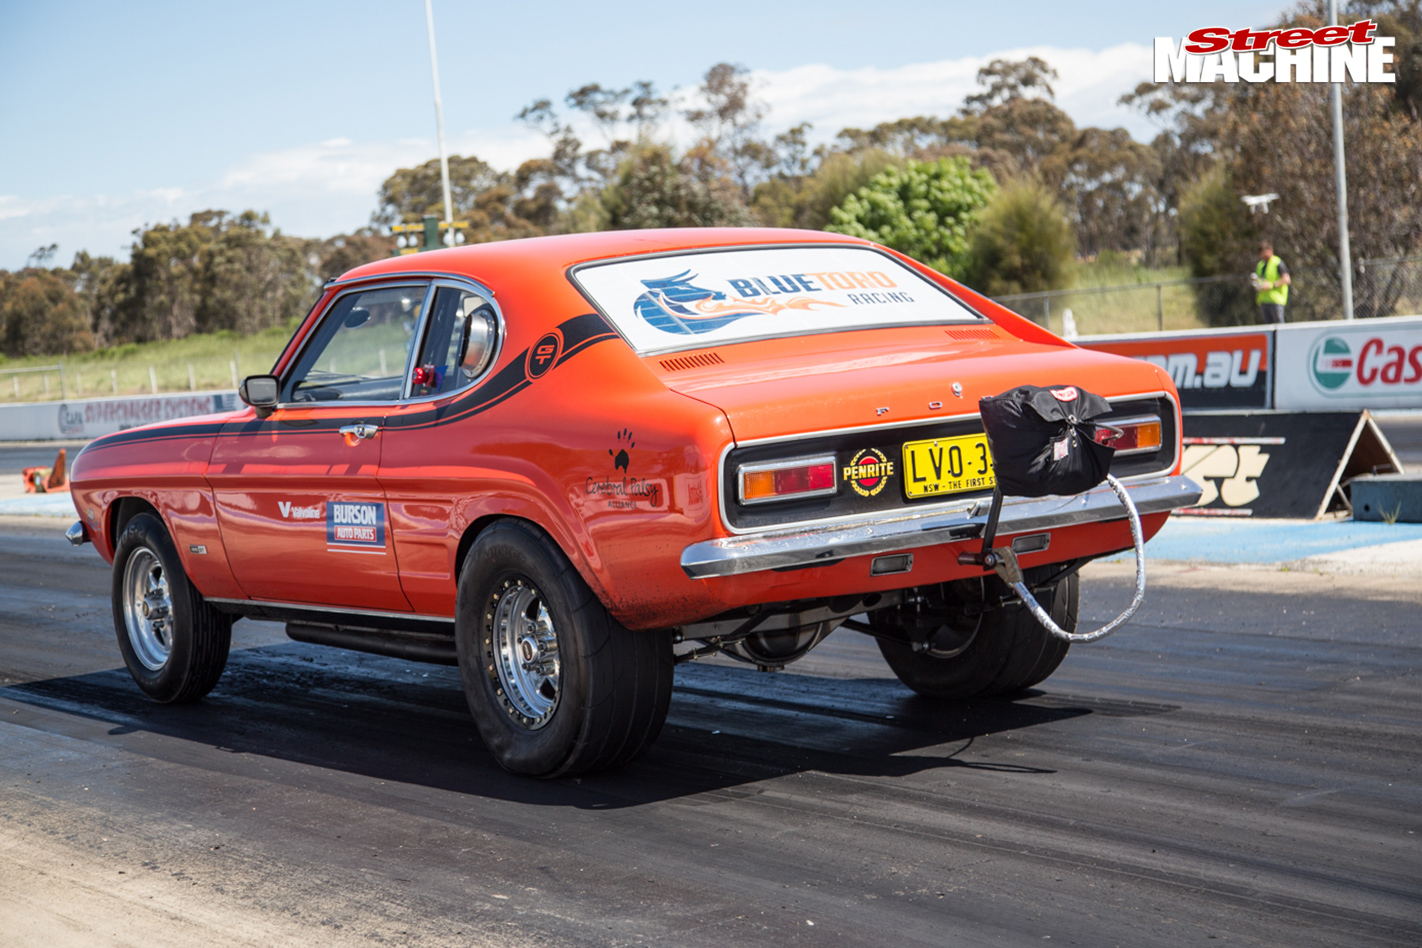 TURBO-LS-FORD-CAPRI-AND-TWIN-TURBO-LS-MITSUBISHI-EXPRESS-VAN-AT-DRAG-CHALLENGE-rear